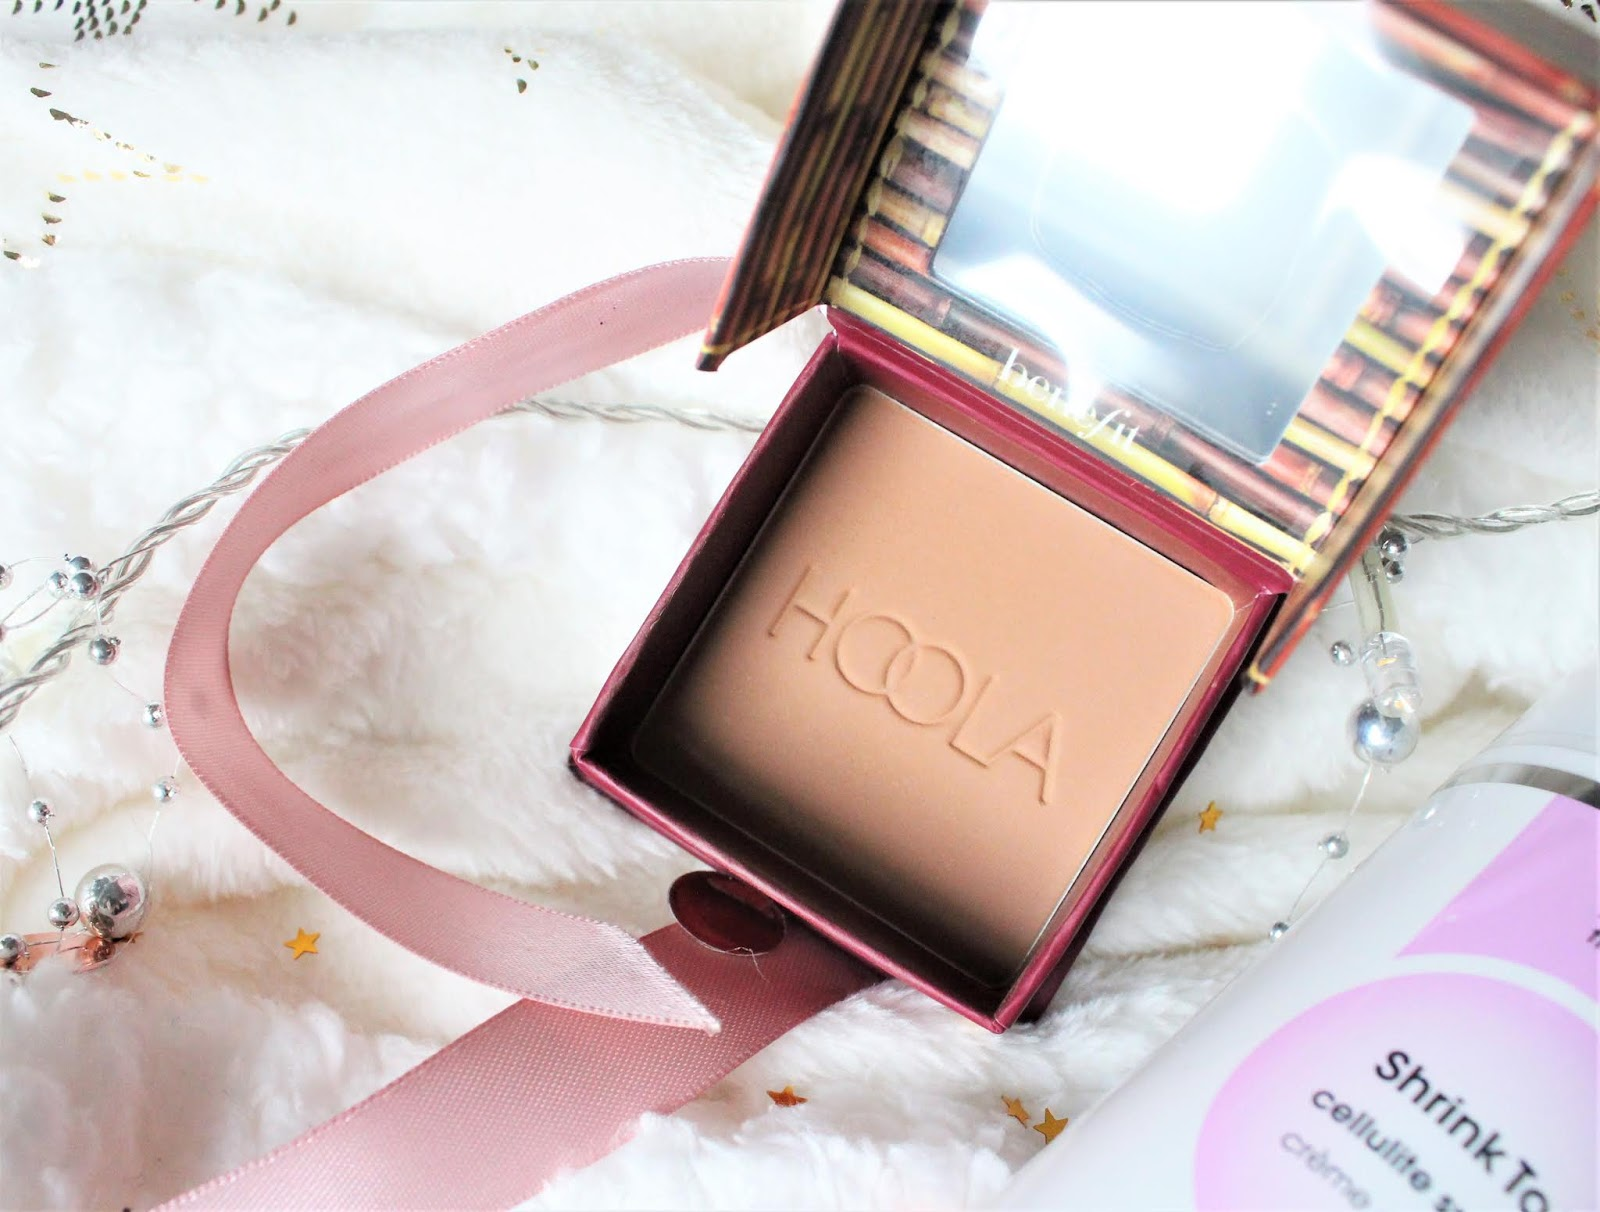 hoola bronzer review blog